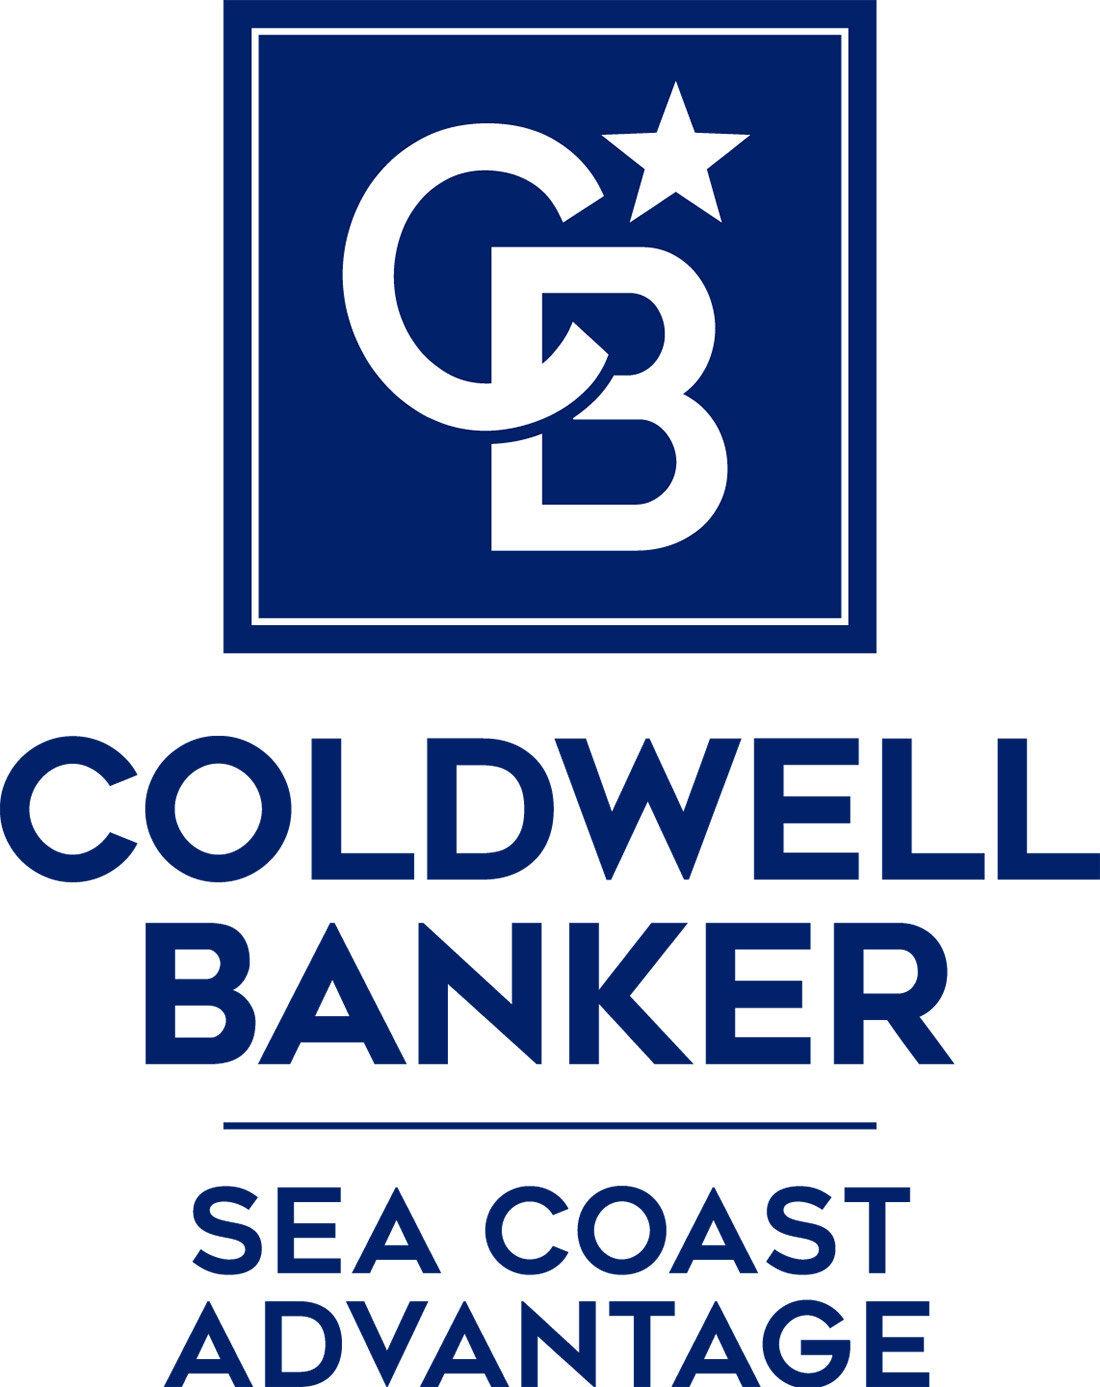 Saul Cohen - Coldwell Banker Sea Coast Advantage Realty Logo